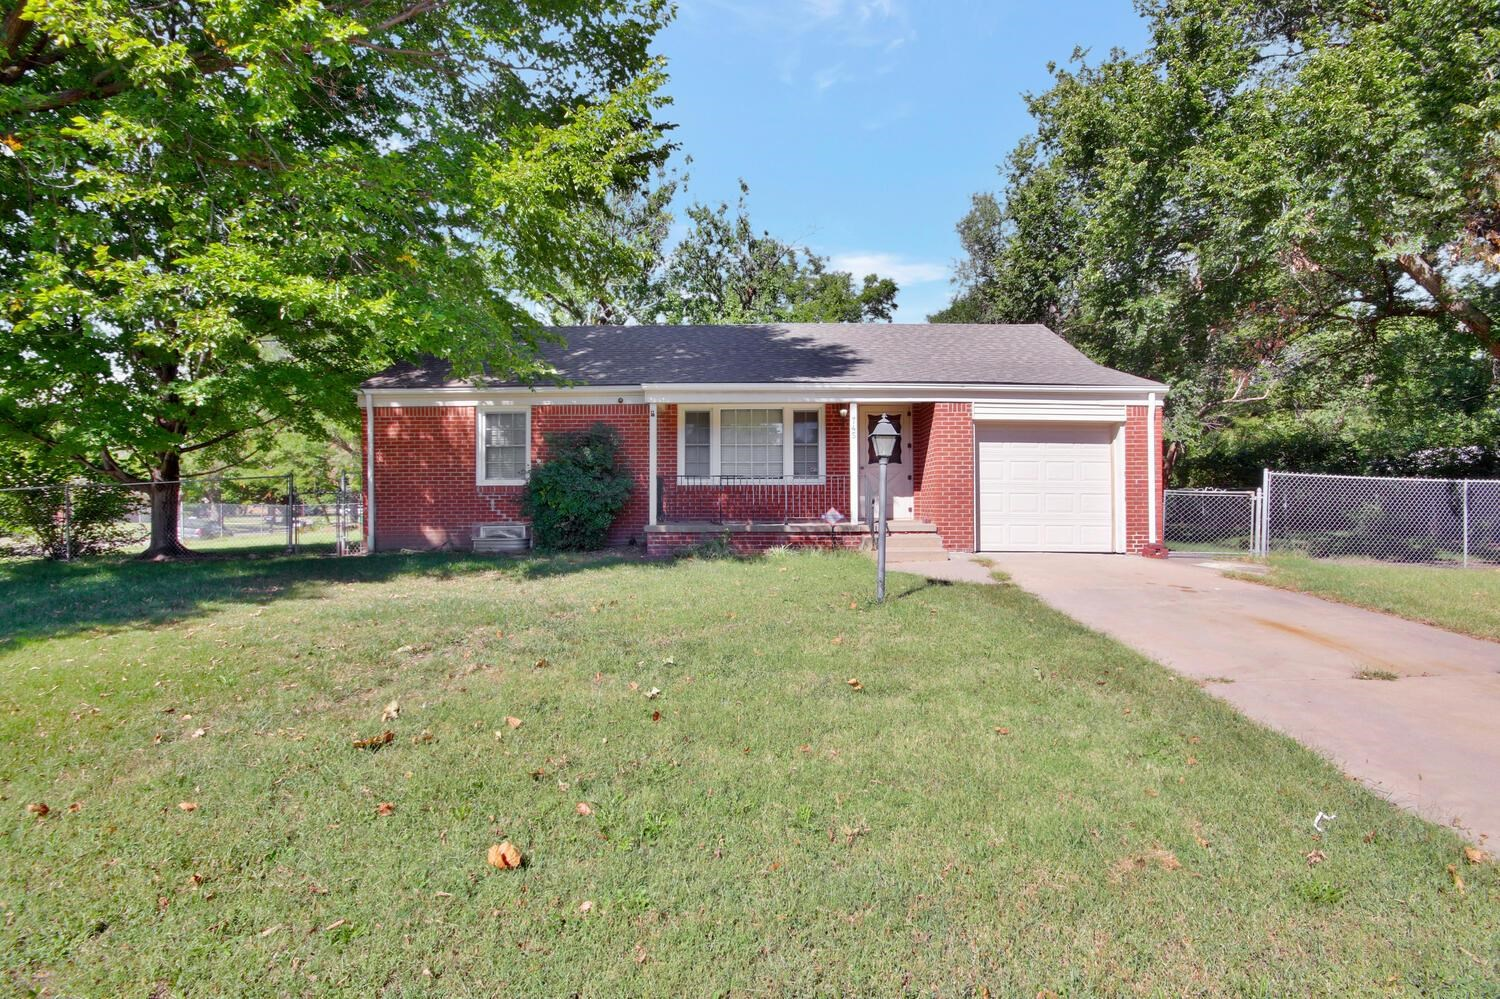 Your next home awaits! This lovely home is located on a HUGE CORNER LOT offering a great opportunity